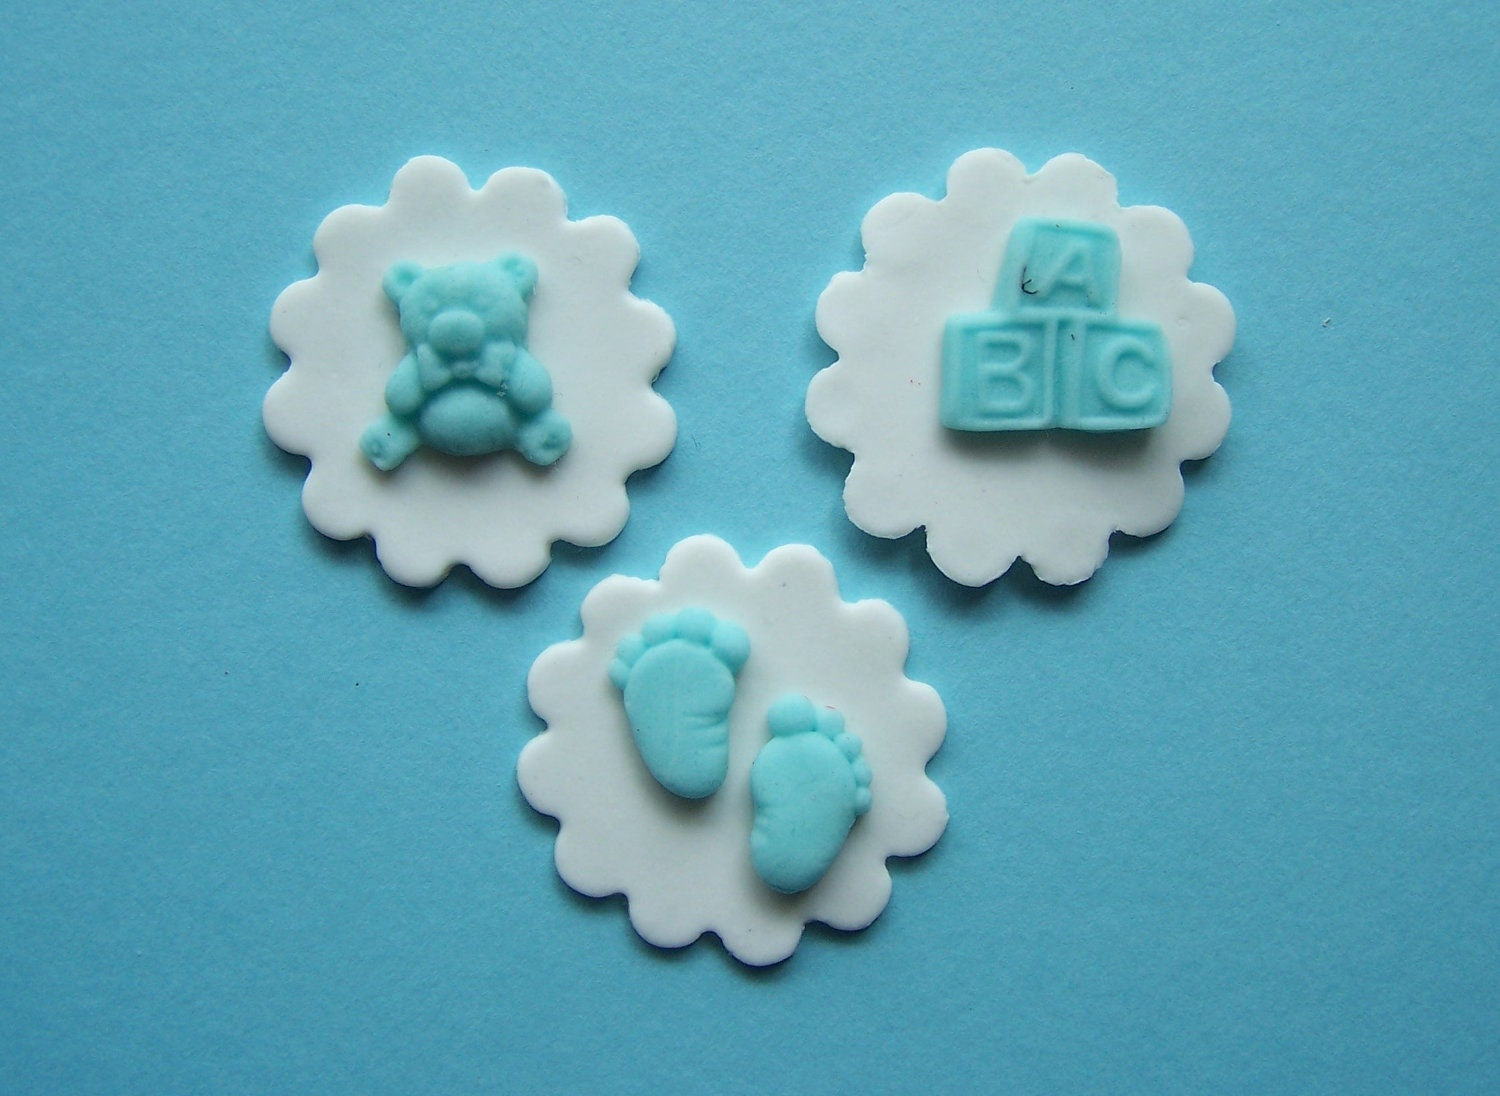 Cake Toppers Baby Shower Etsy : Etsy - Your place to buy and sell all things handmade ...